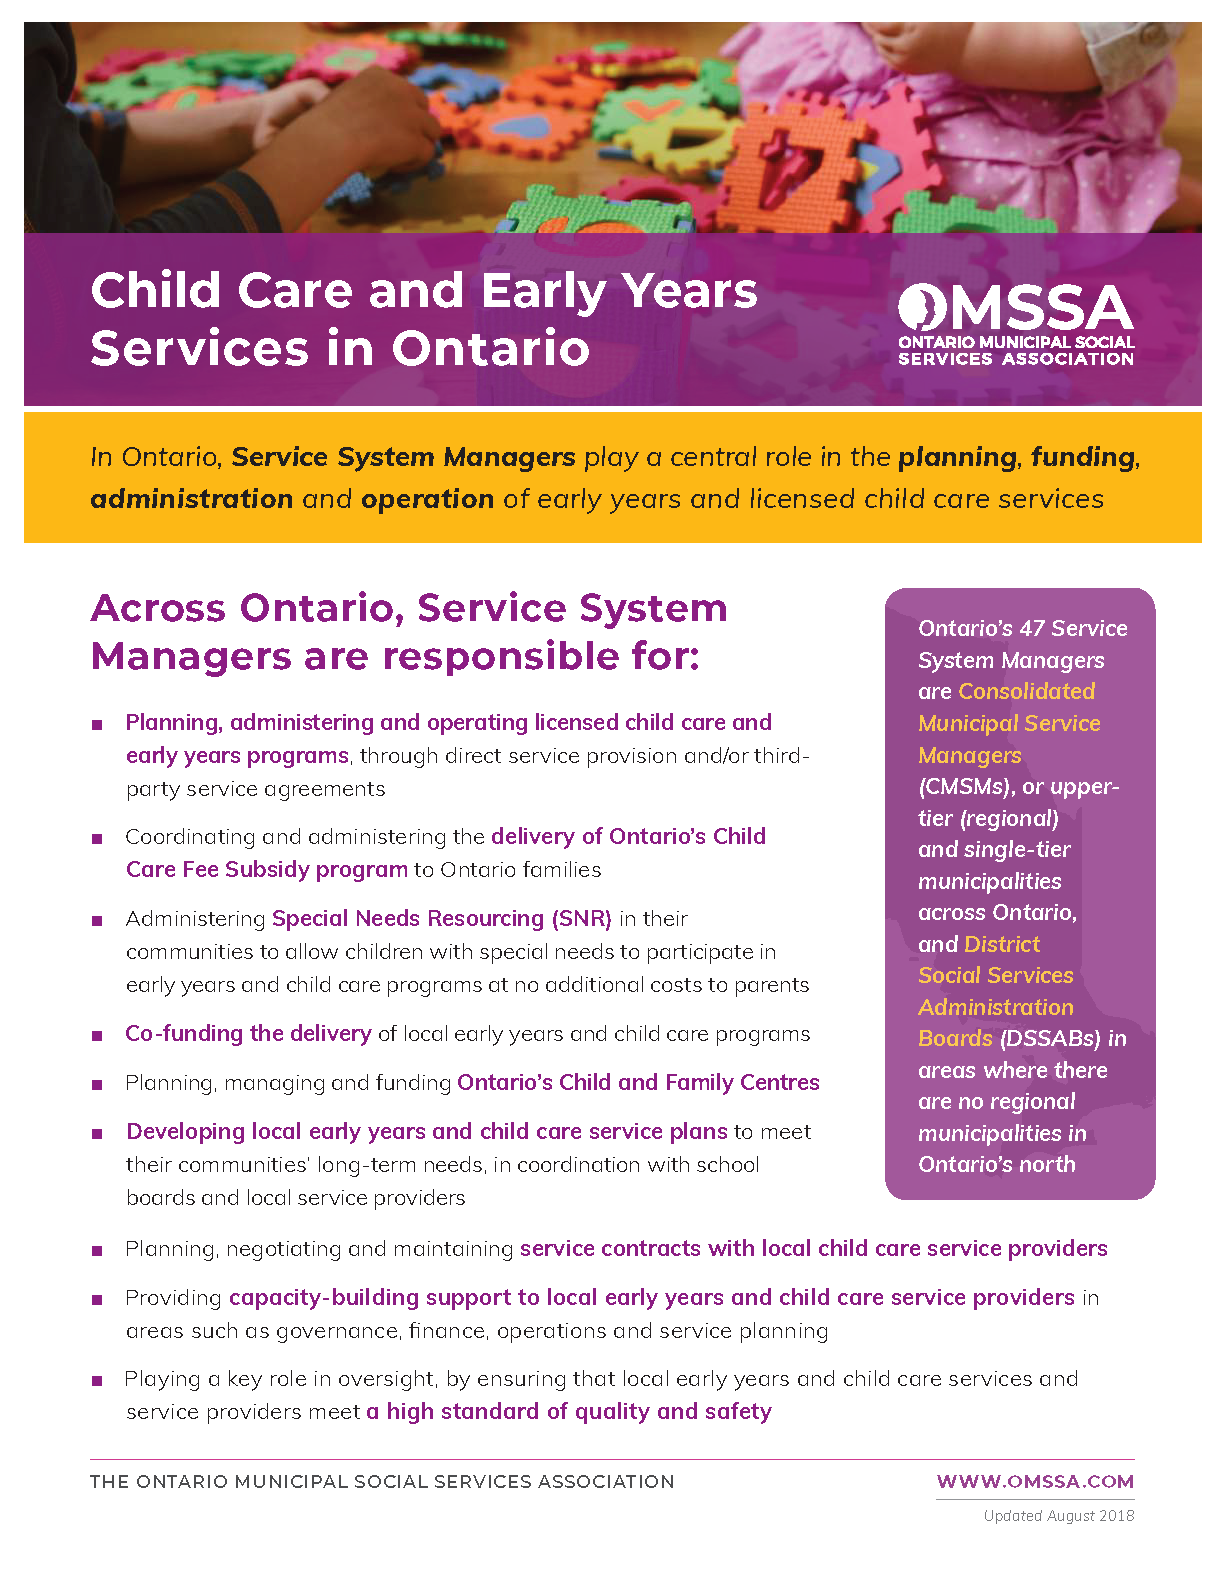 Child Care and Early Years Services in Ontario